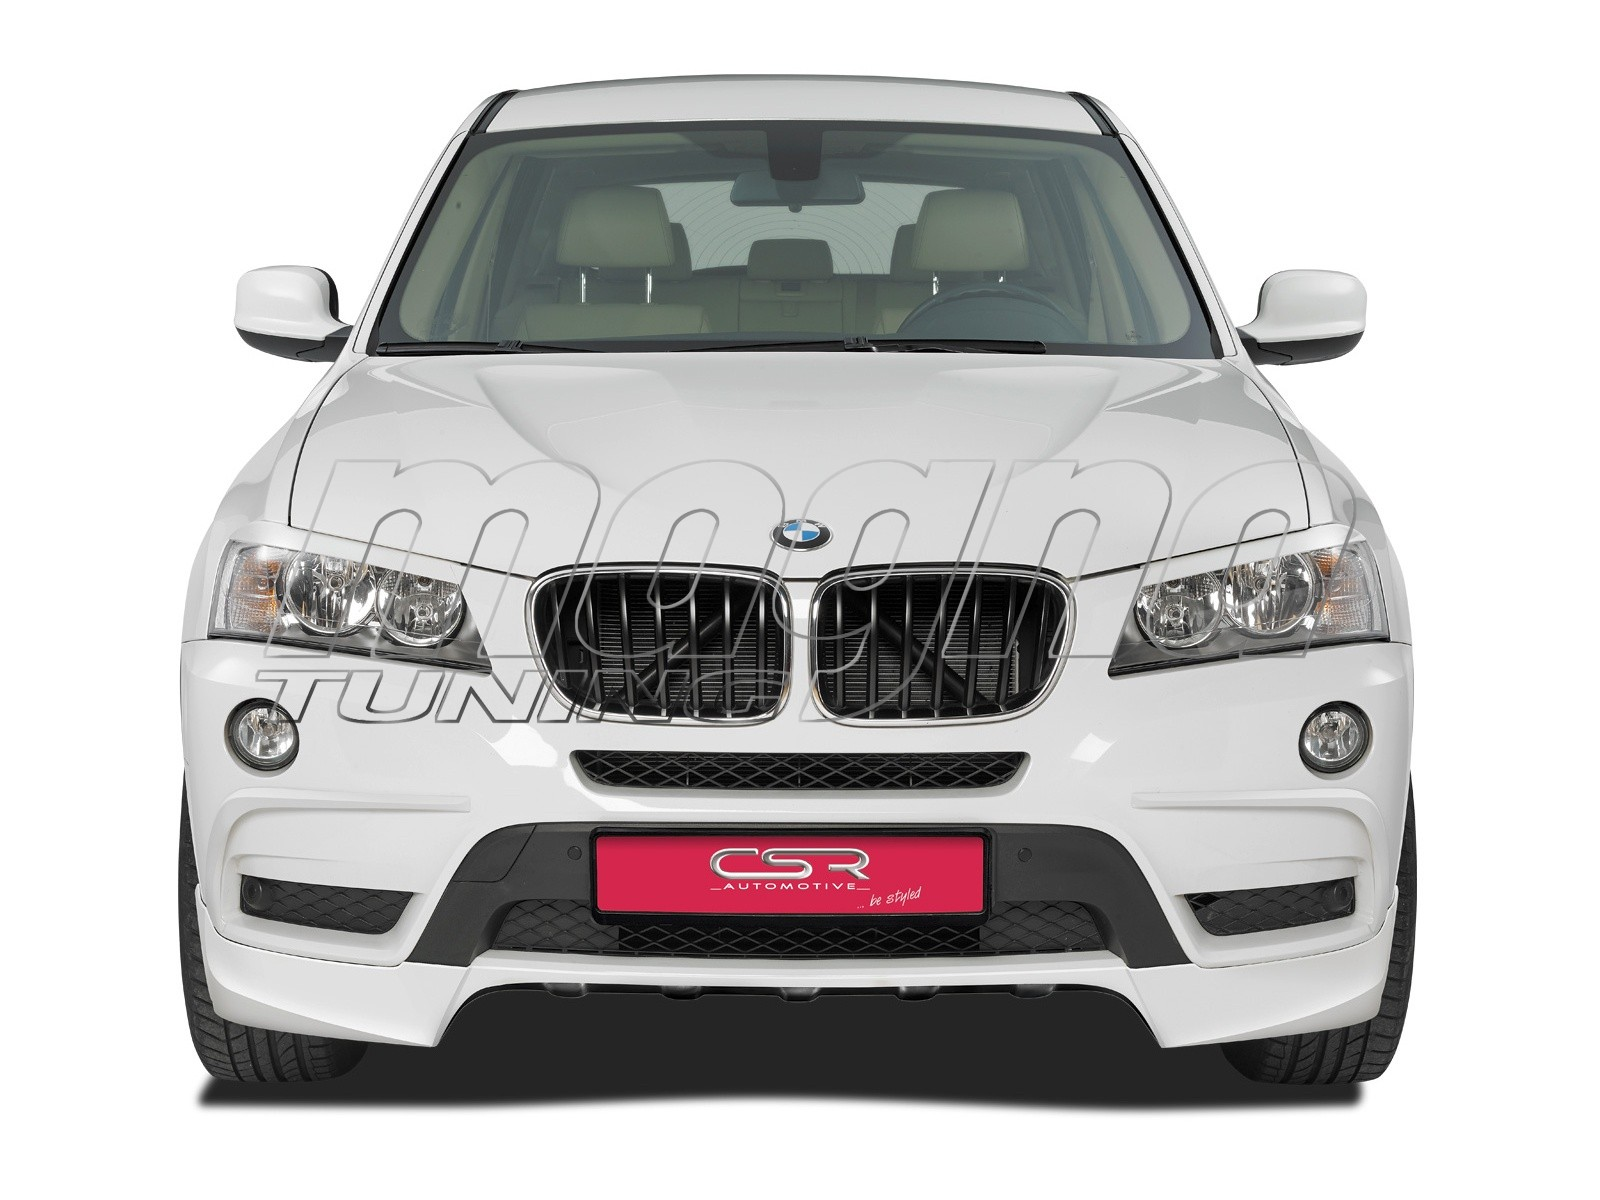 bmw x3 f25 cx front bumper extension. Black Bedroom Furniture Sets. Home Design Ideas